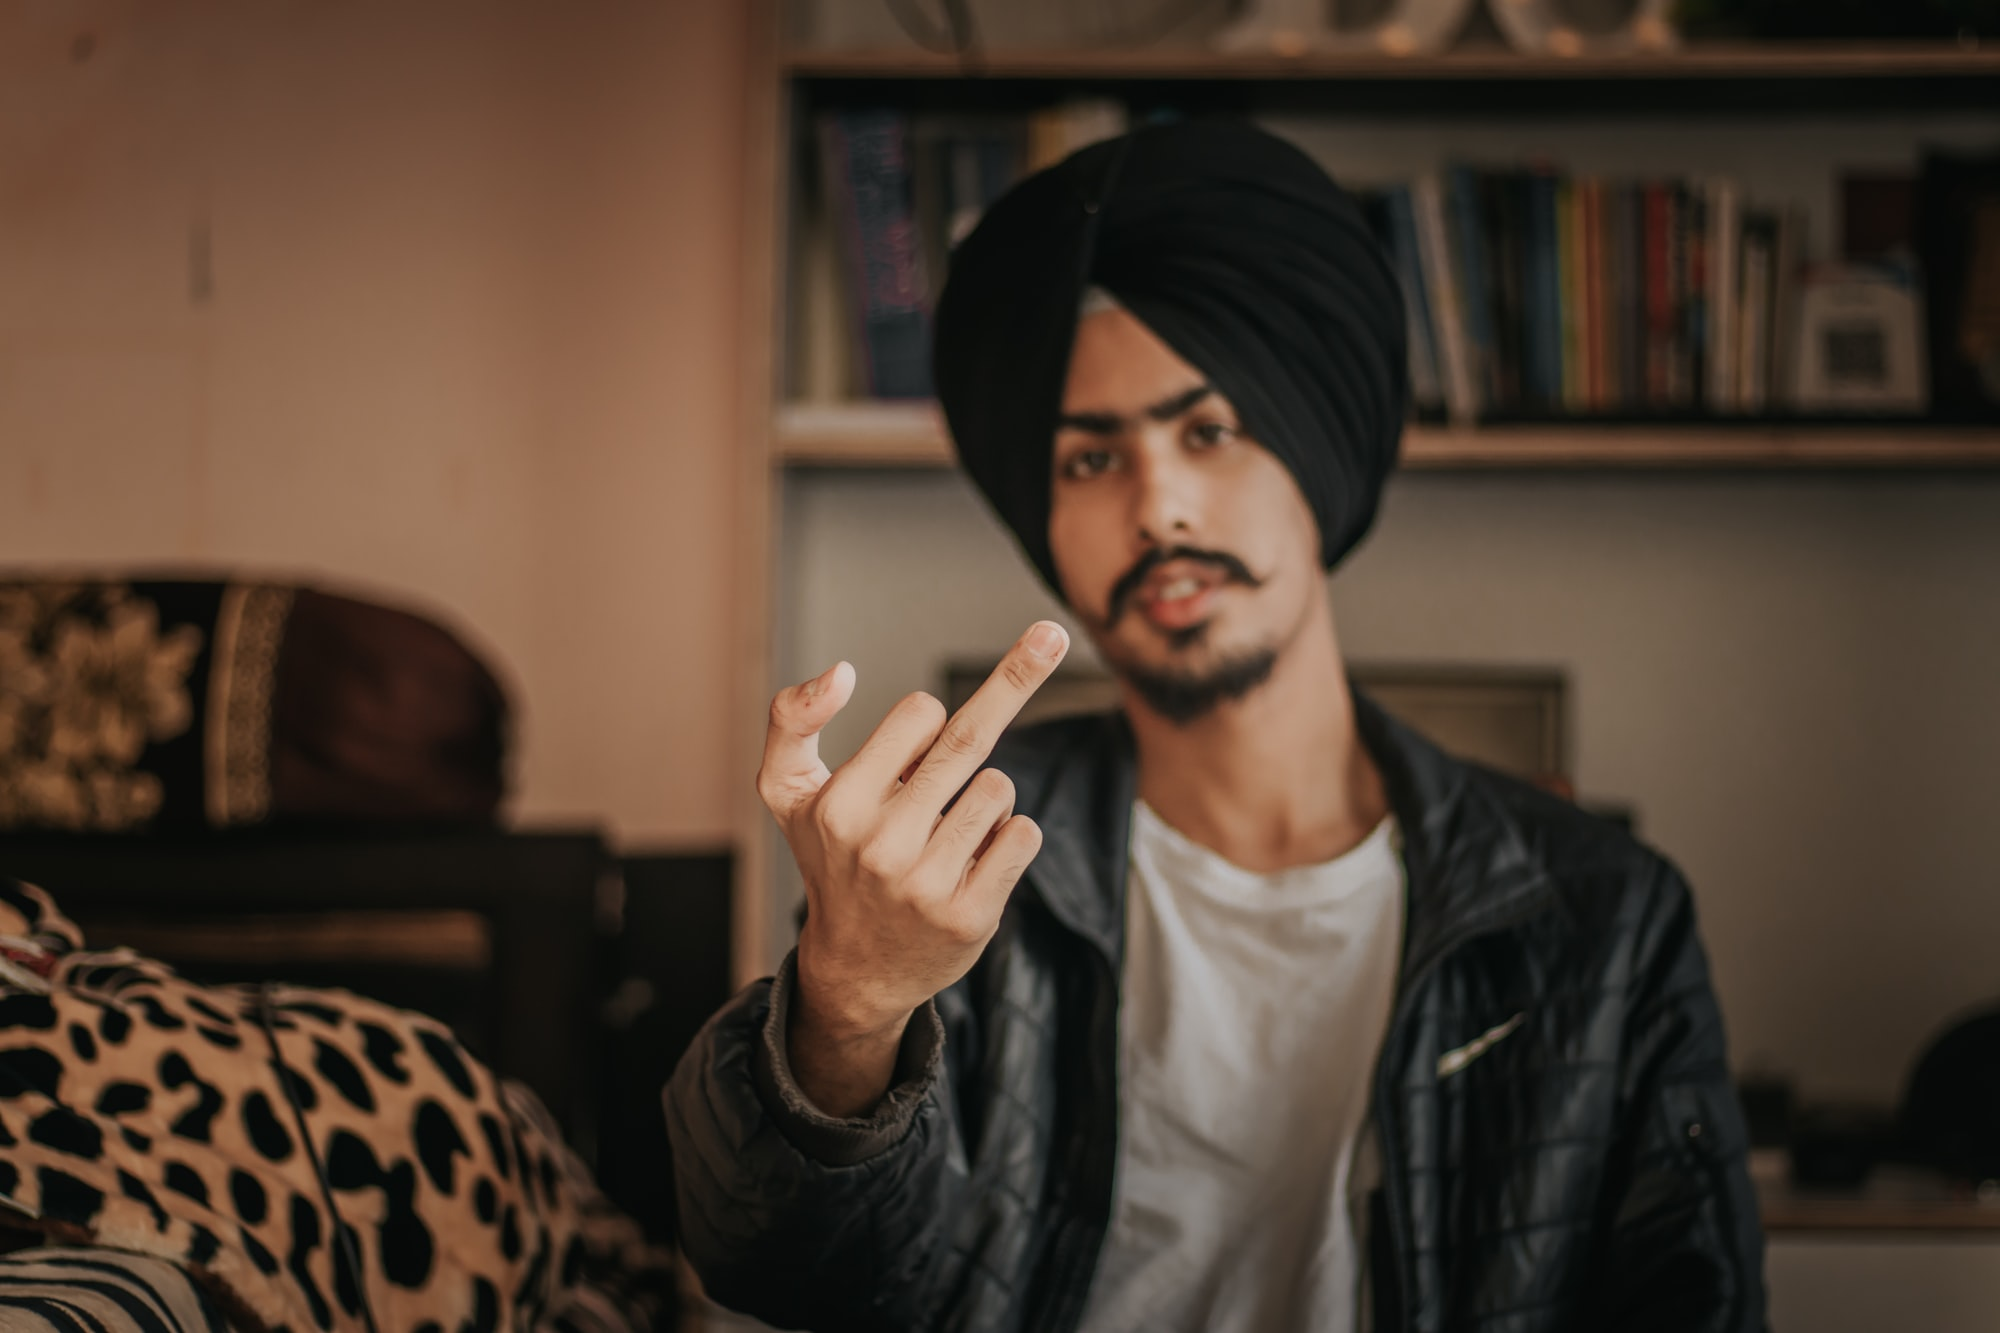 Boy showing middle finger to Haters